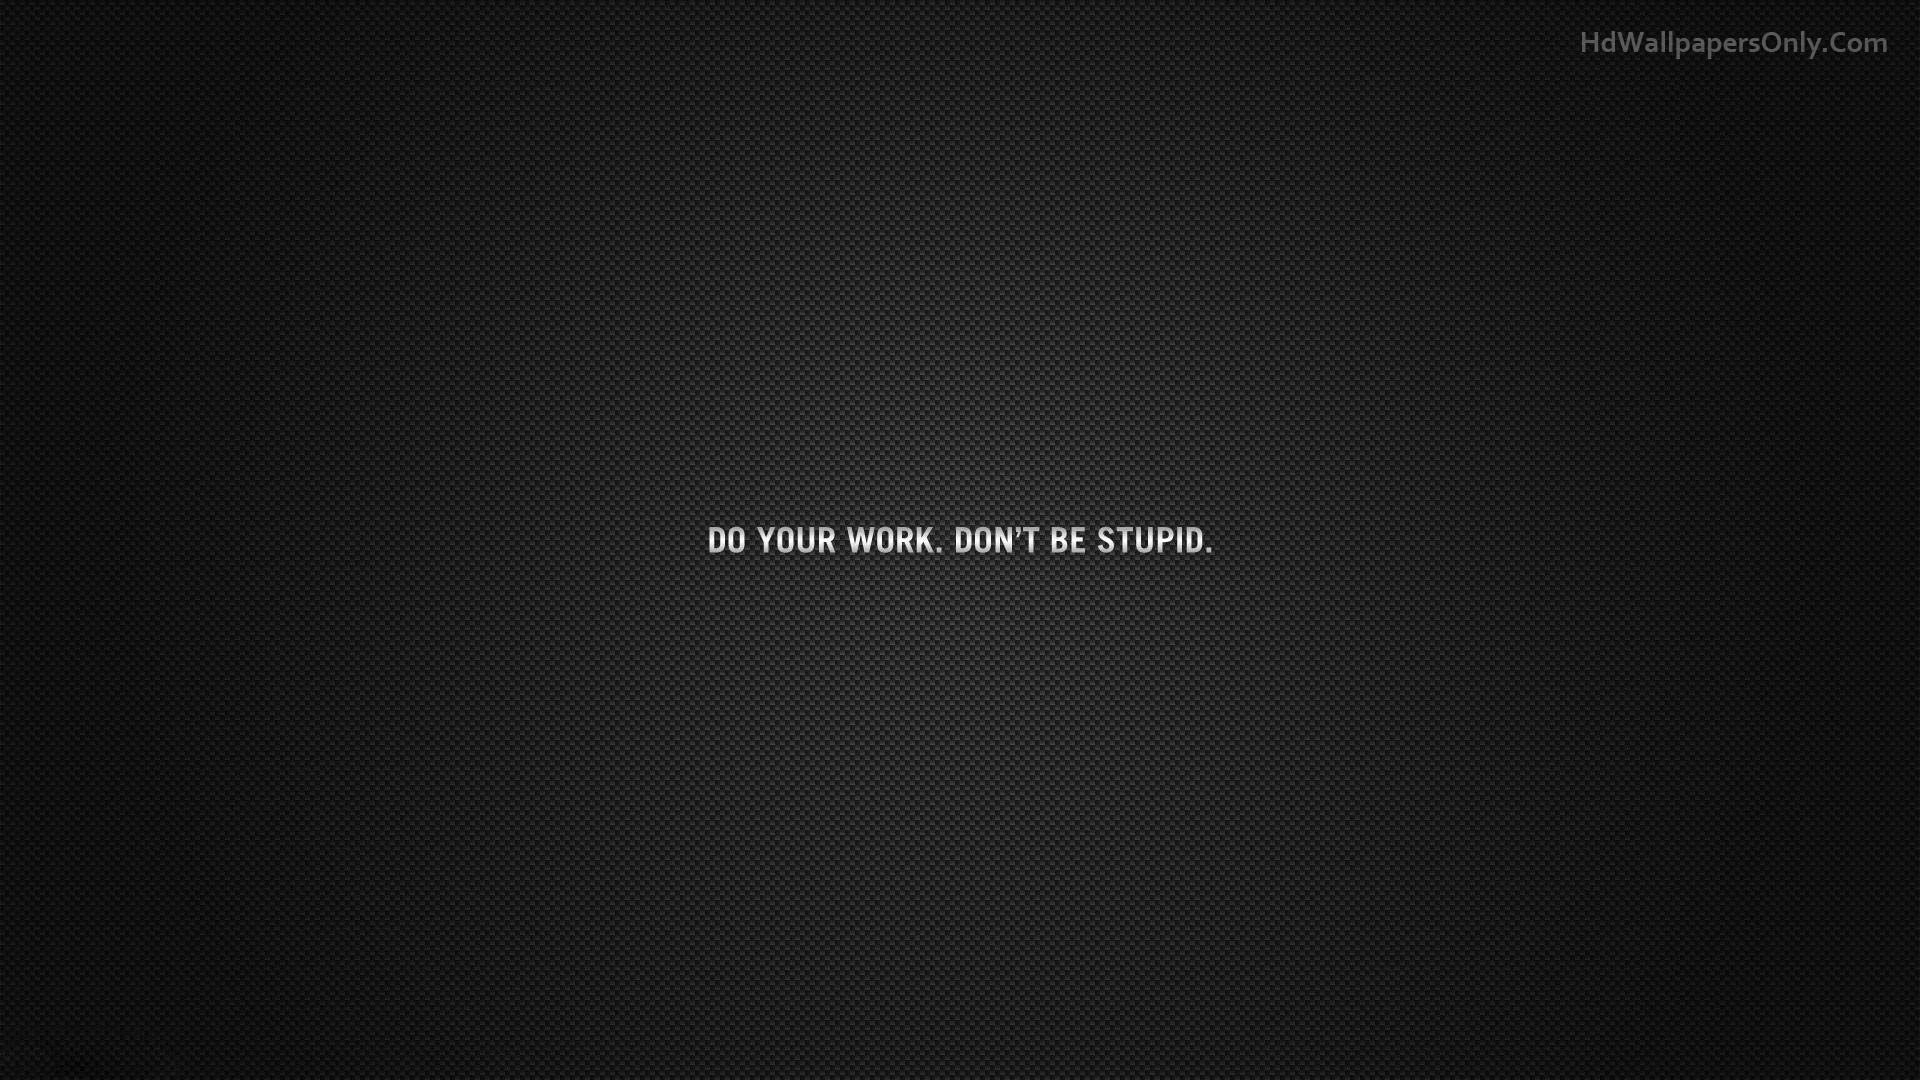 Do Your Work Inspirational Quotes Wallpapers Life Quotes Wallpaper Work Quotes